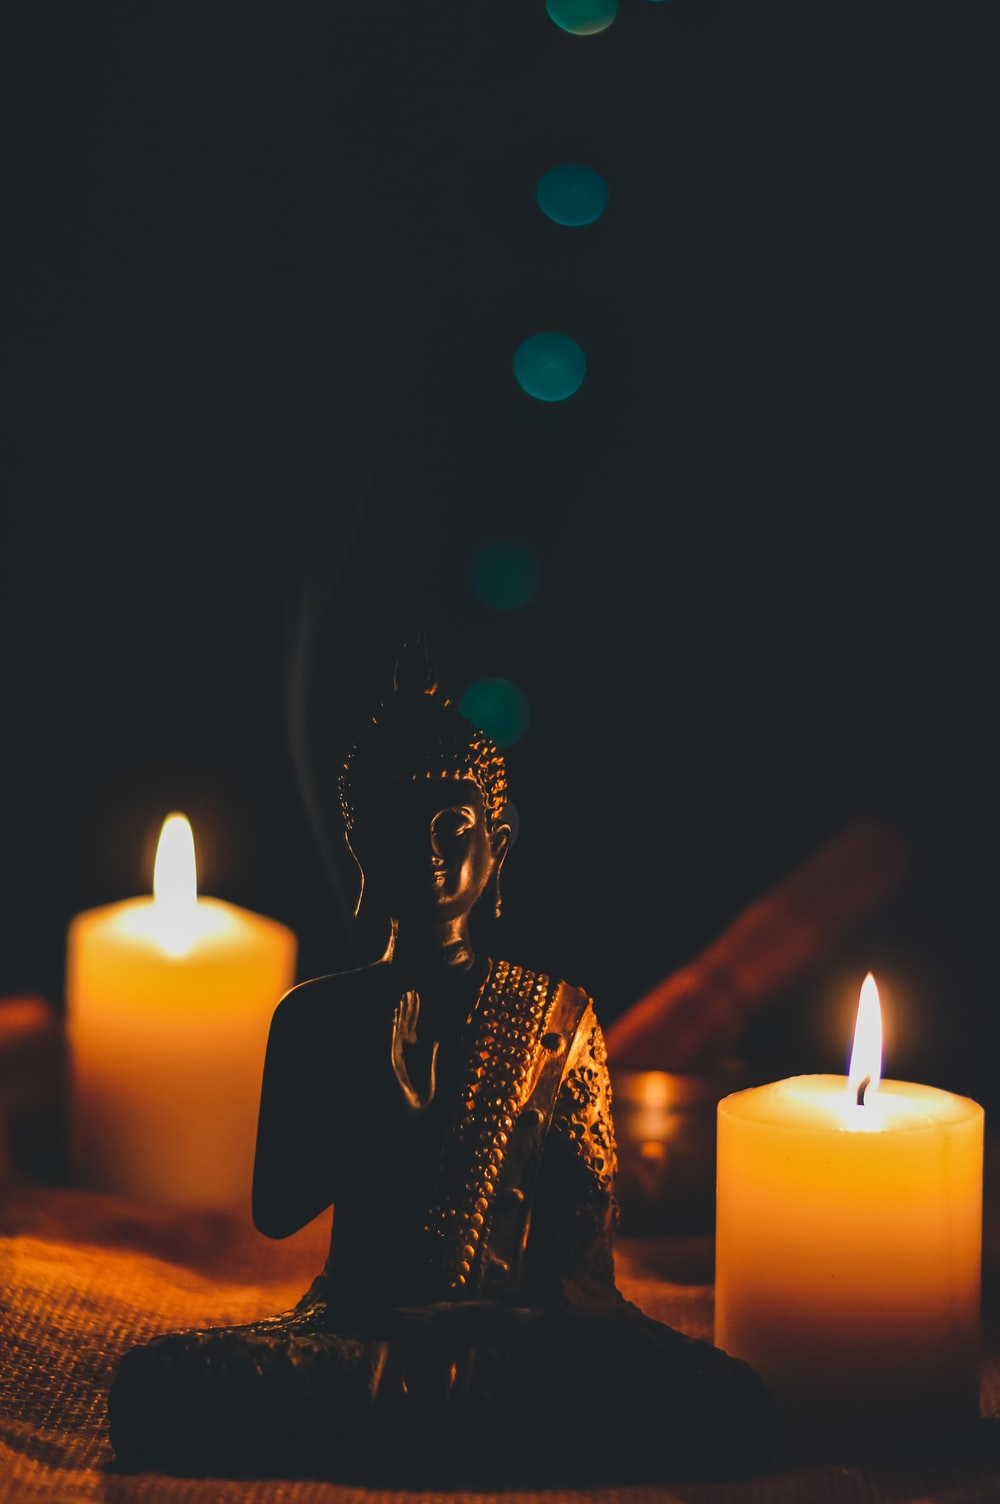 100 Spiritual Pictures Download Free Images On Unsplash